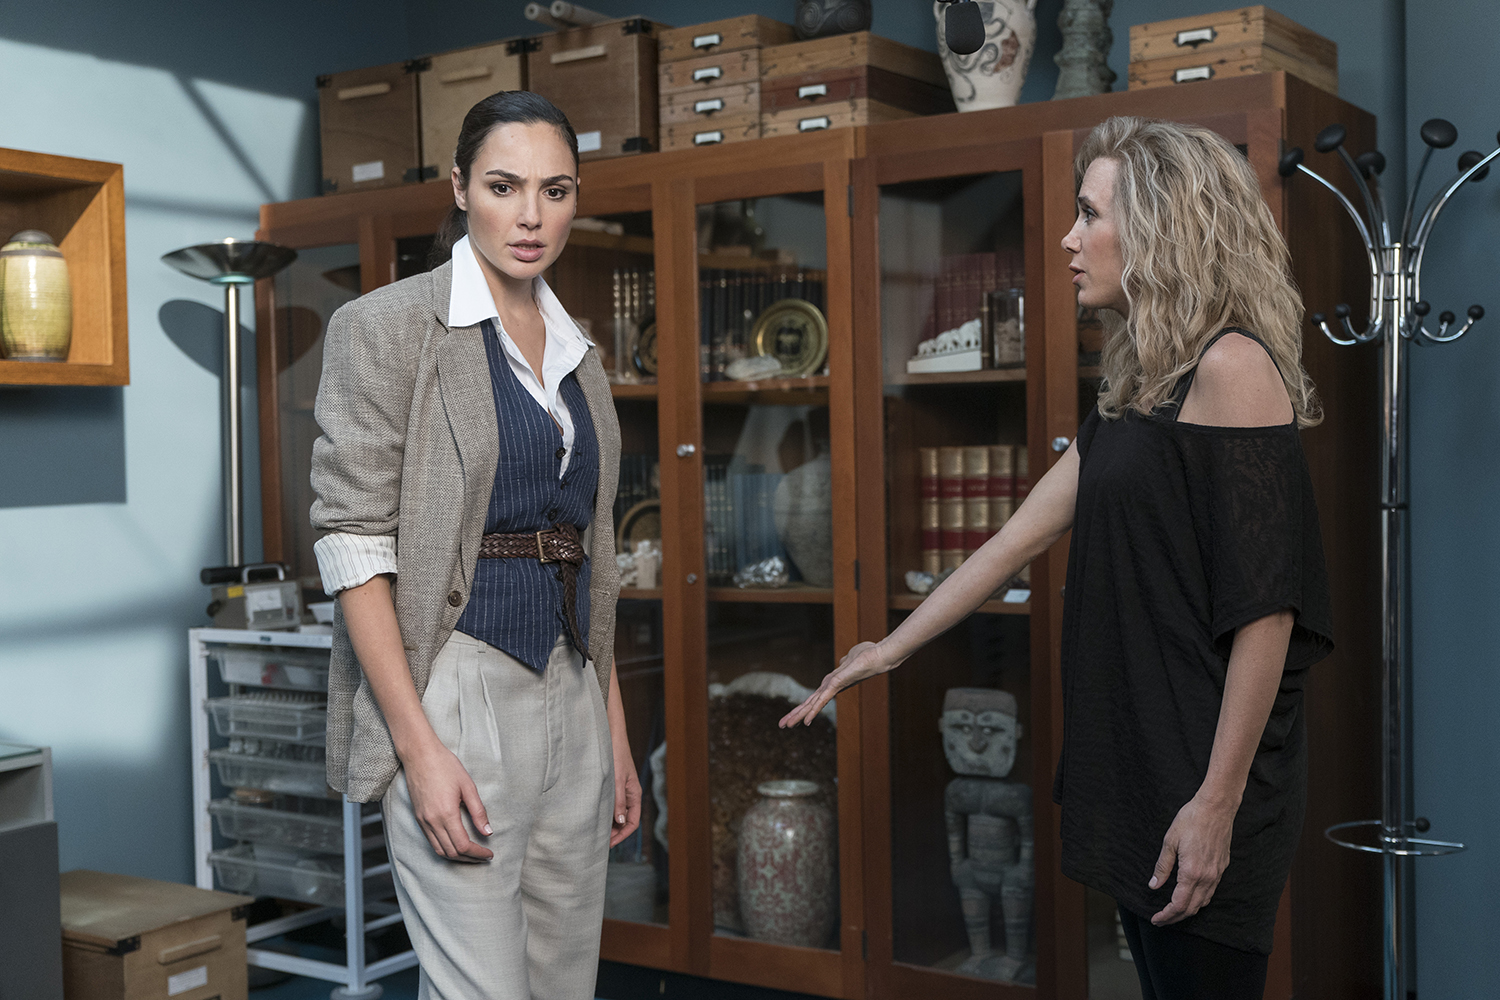 GAL GADOT as Wonder Woman and KRISTEN WIIG as Barbara Minerva (Image: Warner Bros. Pictures)